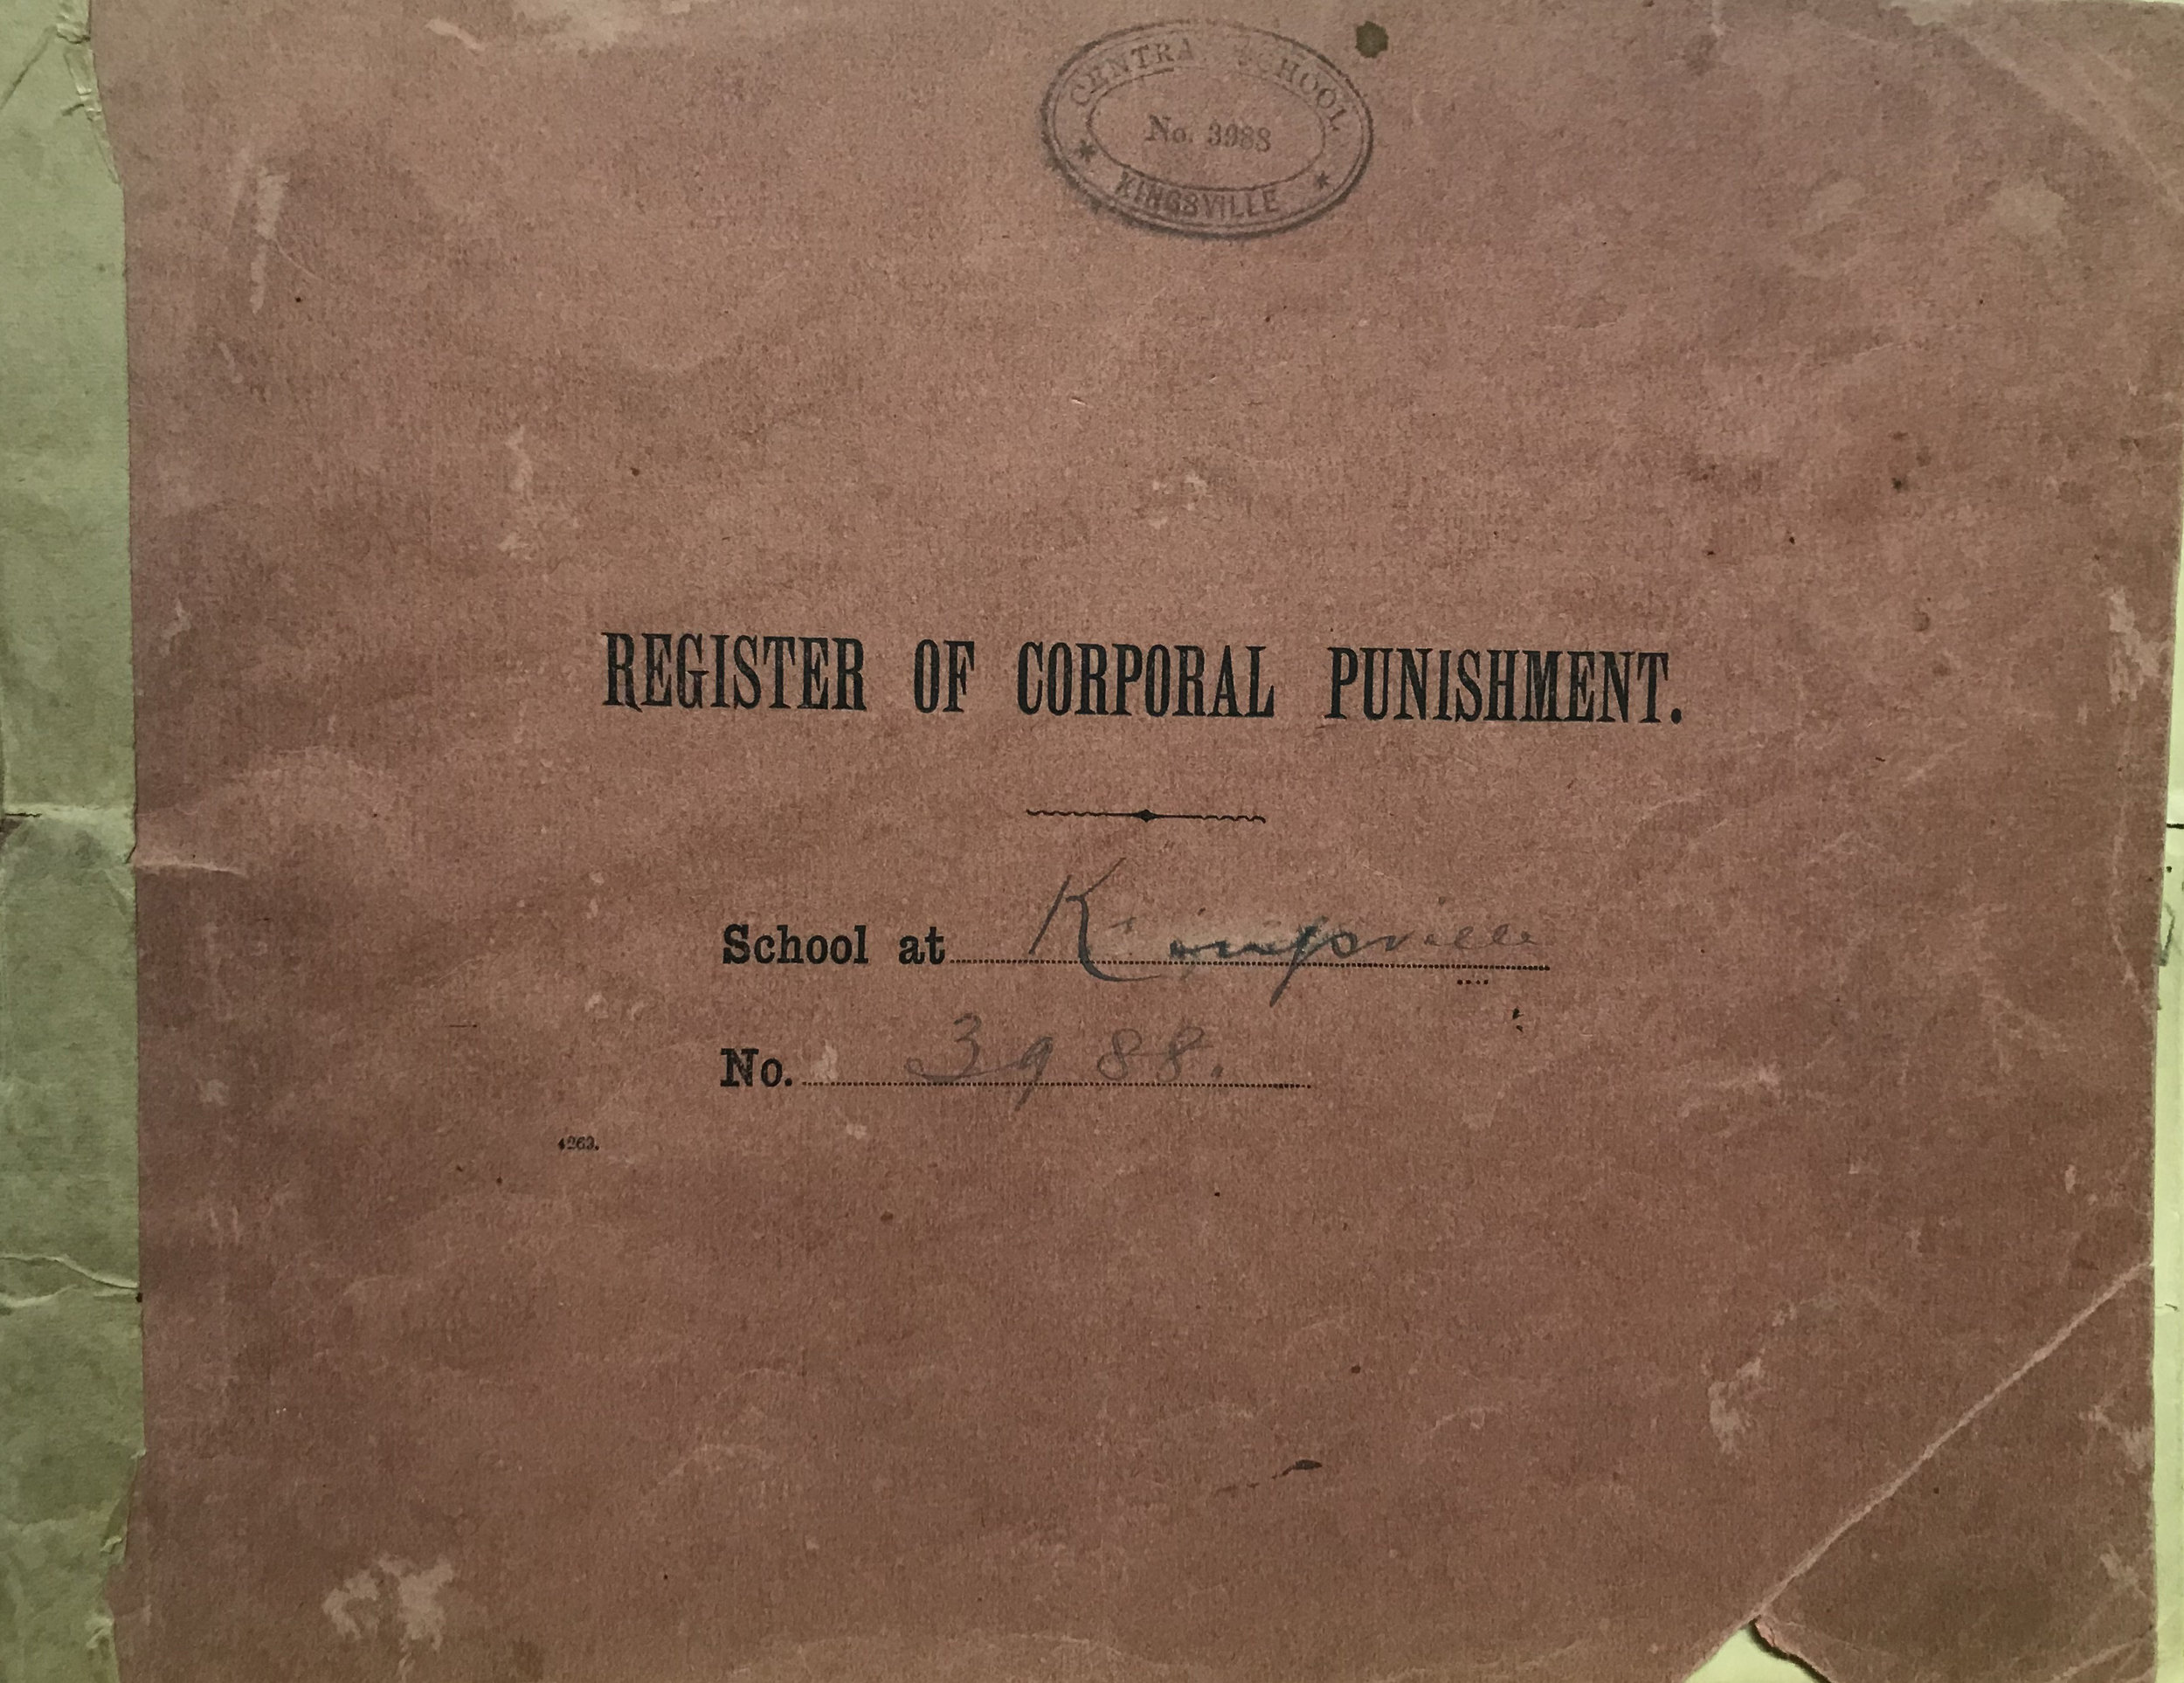 One of the school's registers of corporal punishment - this was used to record which teachers were allowed to use corporal punishment on the students